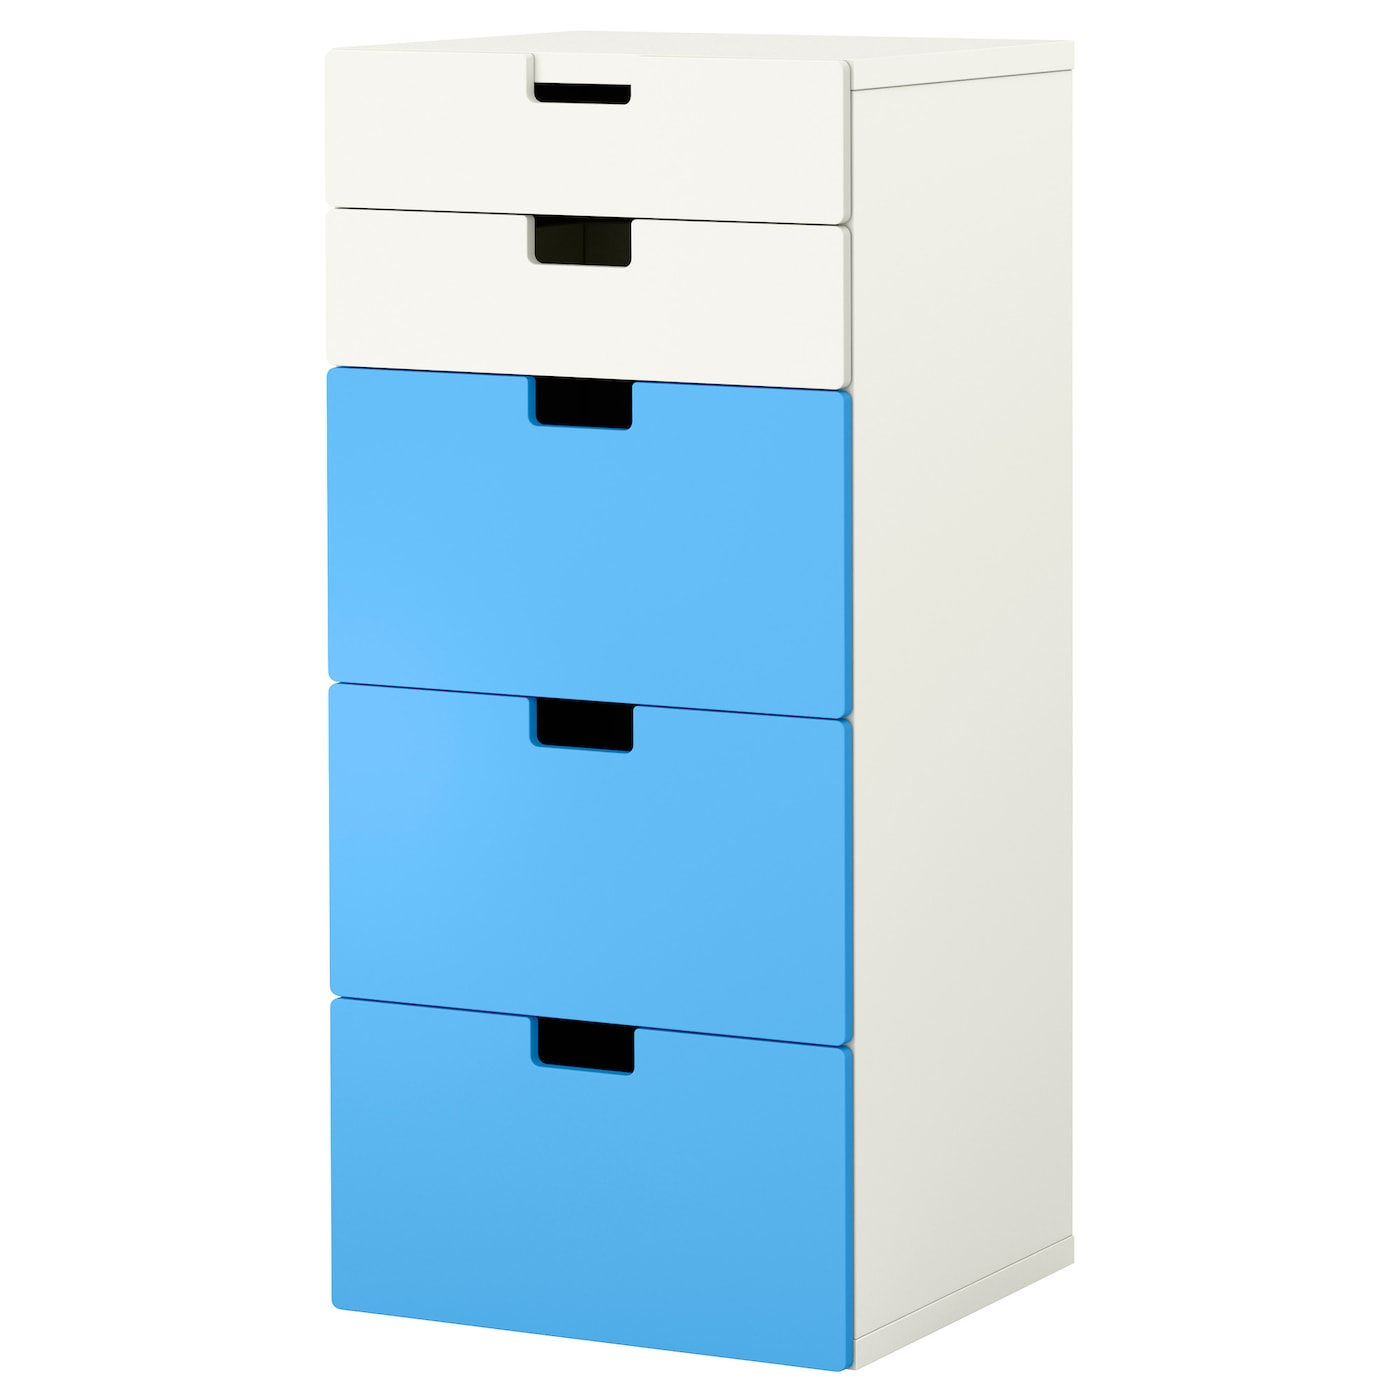 stuva storage combination with drawers white blue 60x50x128 cm ikea. Black Bedroom Furniture Sets. Home Design Ideas